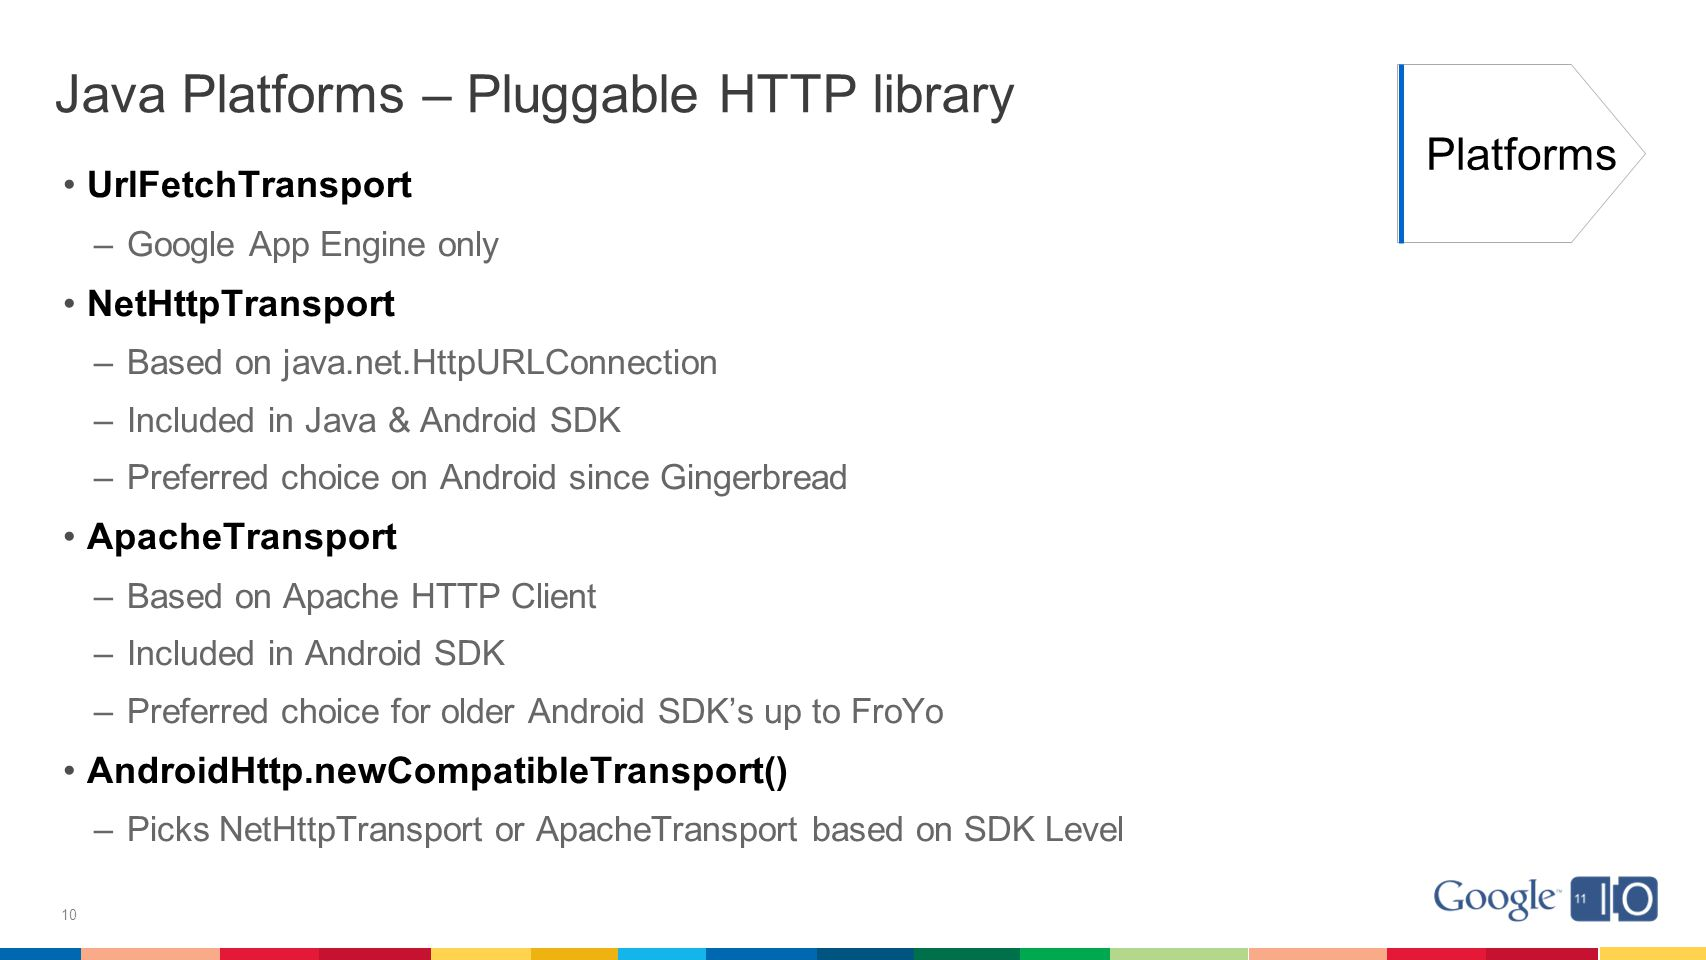 10 Java Platforms – Pluggable HTTP library UrlFetchTransport –Google App Engine only NetHttpTransport –Based on java.net.HttpURLConnection –Included in Java & Android SDK –Preferred choice on Android since Gingerbread ApacheTransport –Based on Apache HTTP Client –Included in Android SDK –Preferred choice for older Android SDK's up to FroYo AndroidHttp.newCompatibleTransport() –Picks NetHttpTransport or ApacheTransport based on SDK Level Platforms